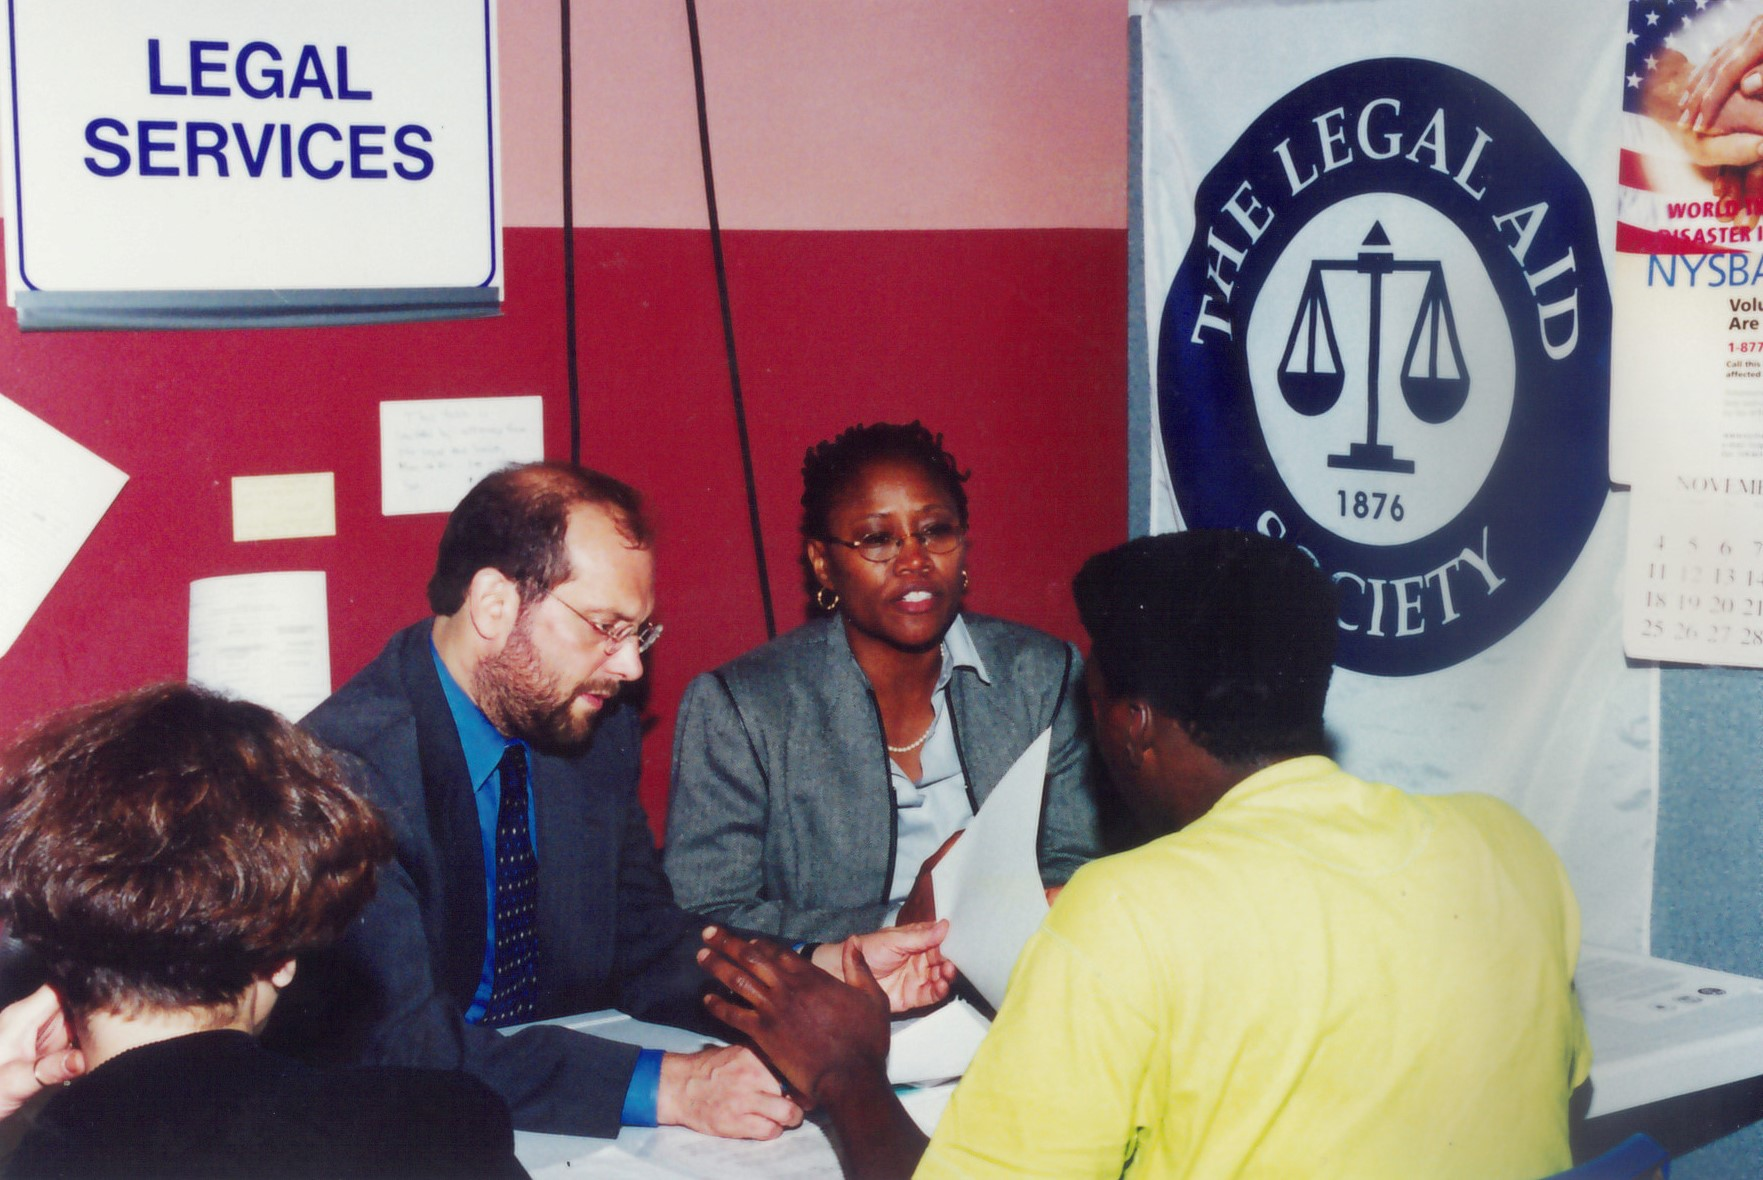 2001-legal_services_table